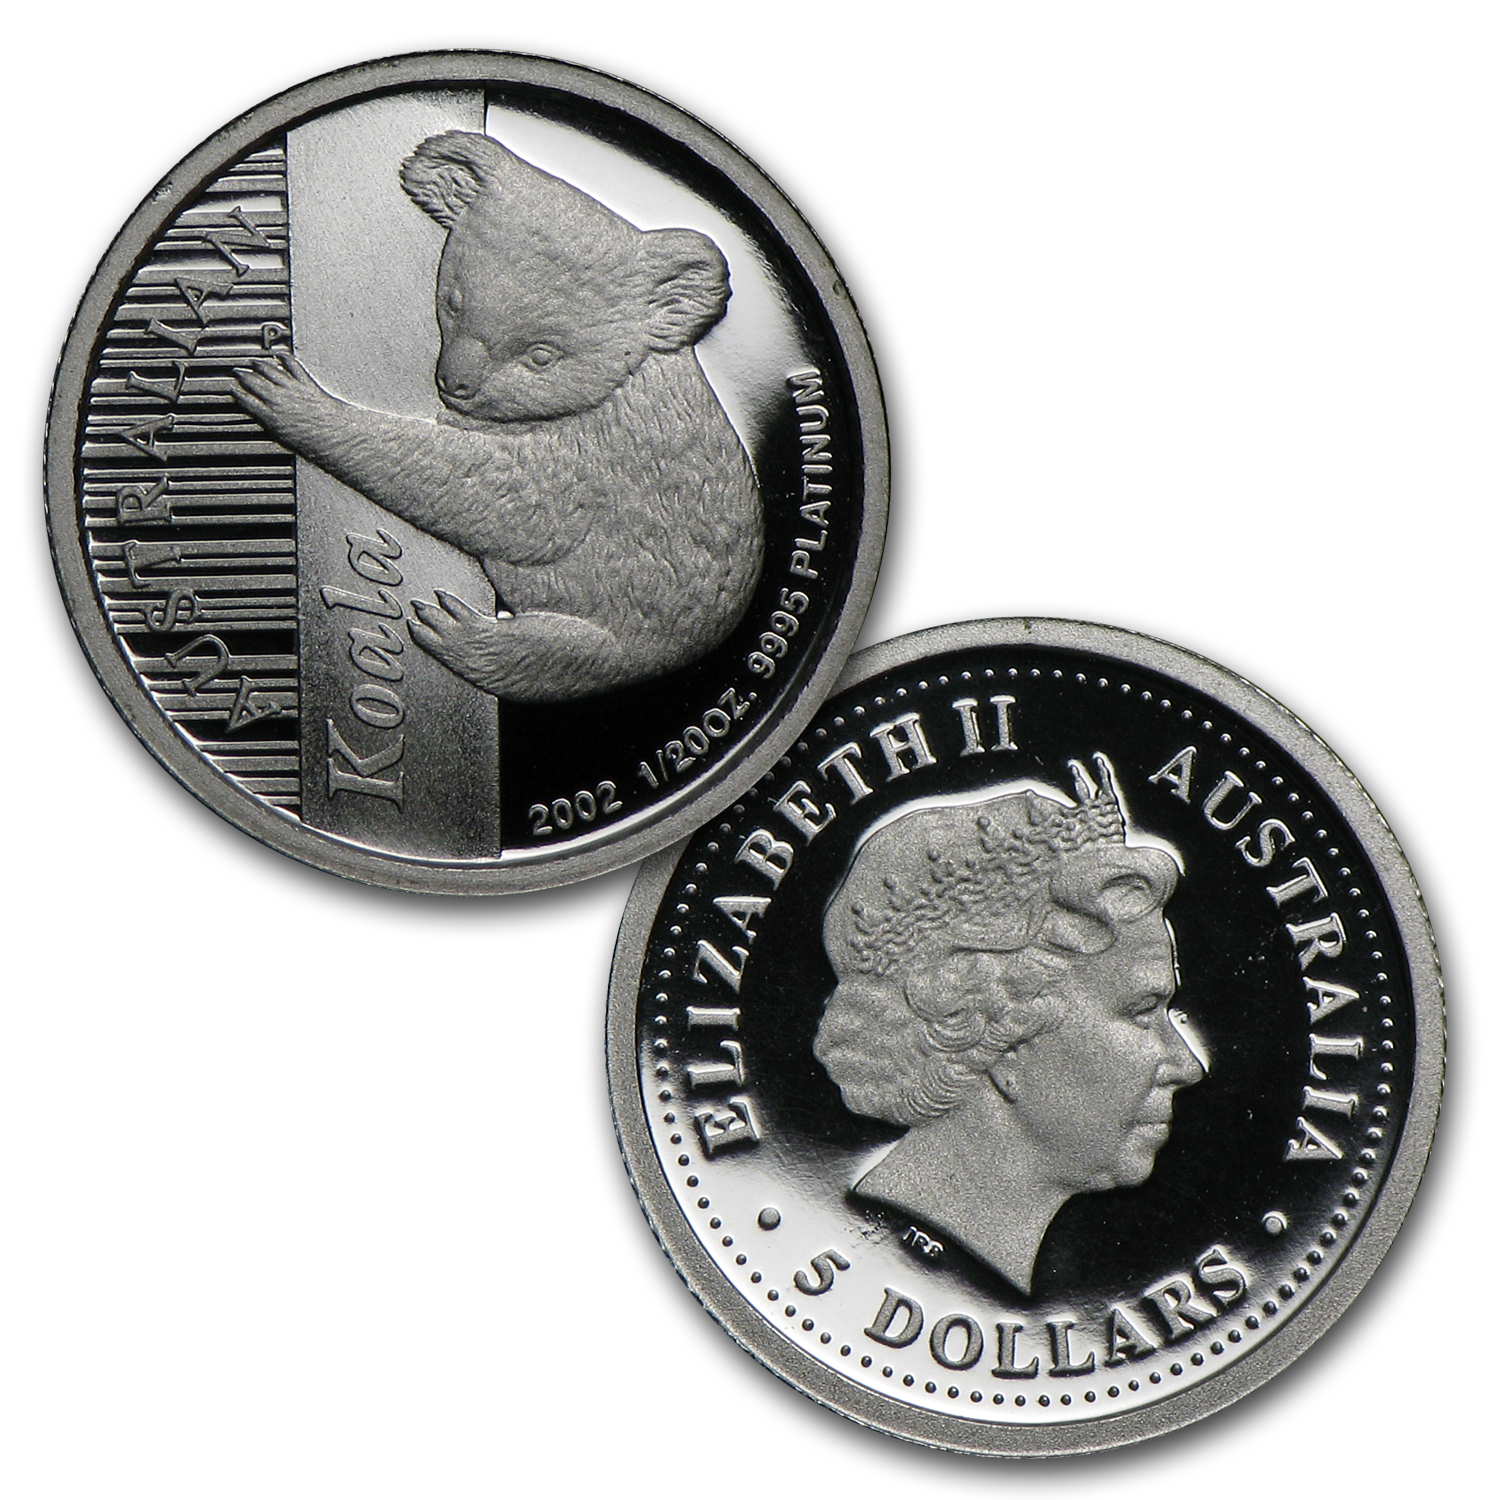 2002 Australia 3-Coin Proof Mini Outback Collection